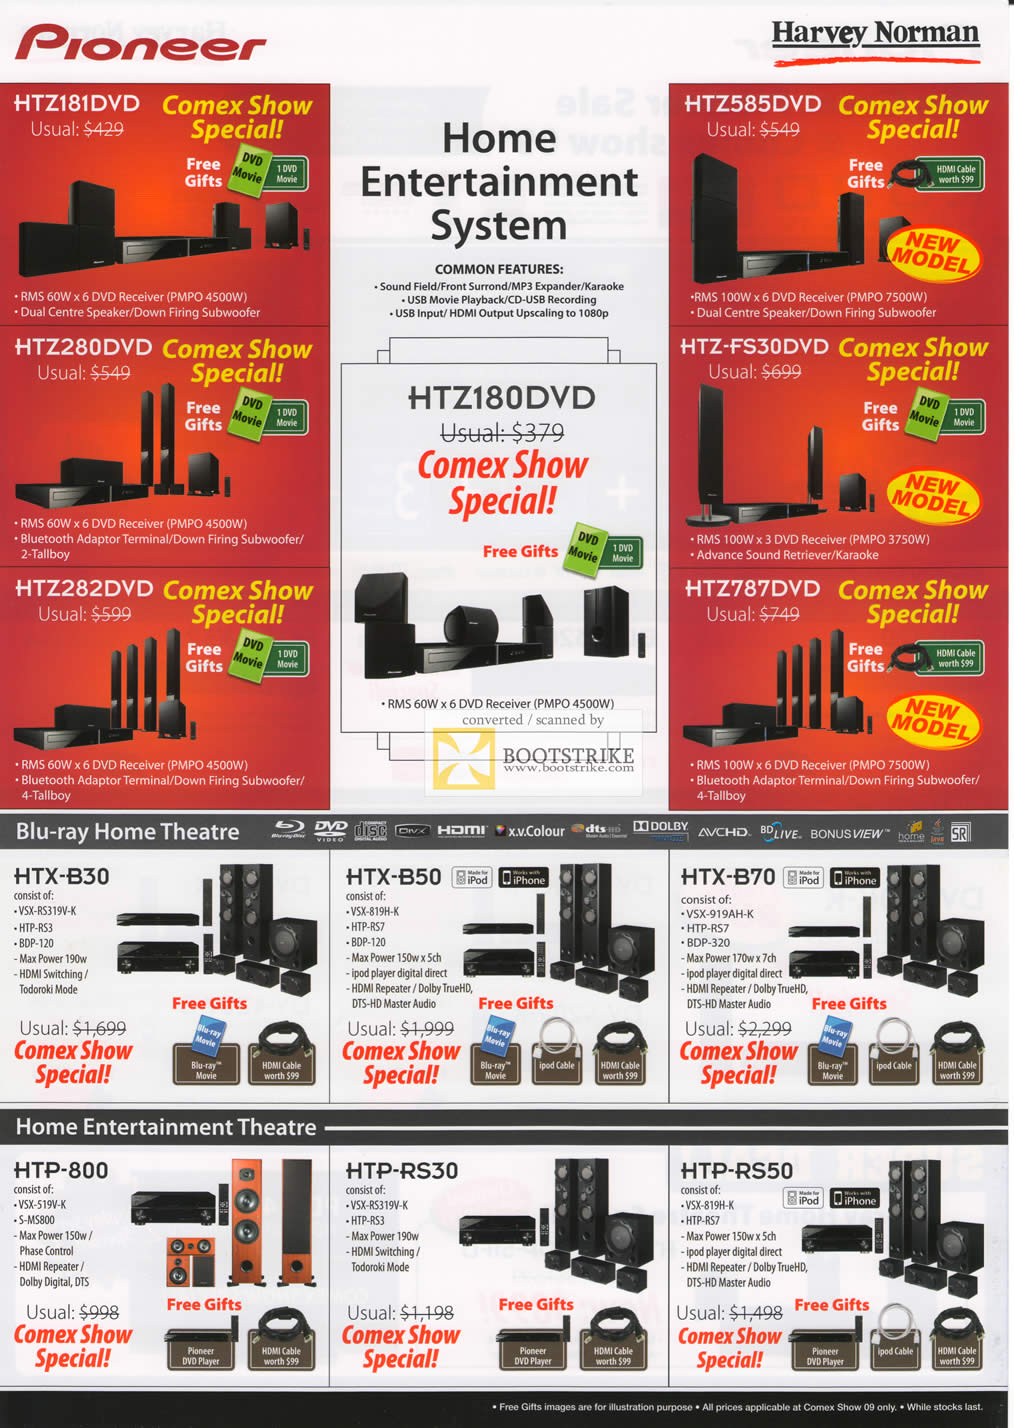 Comex 2009 price list image brochure of Pioneer Home Entertainment System Blu Ray Theatre Harvey Norman